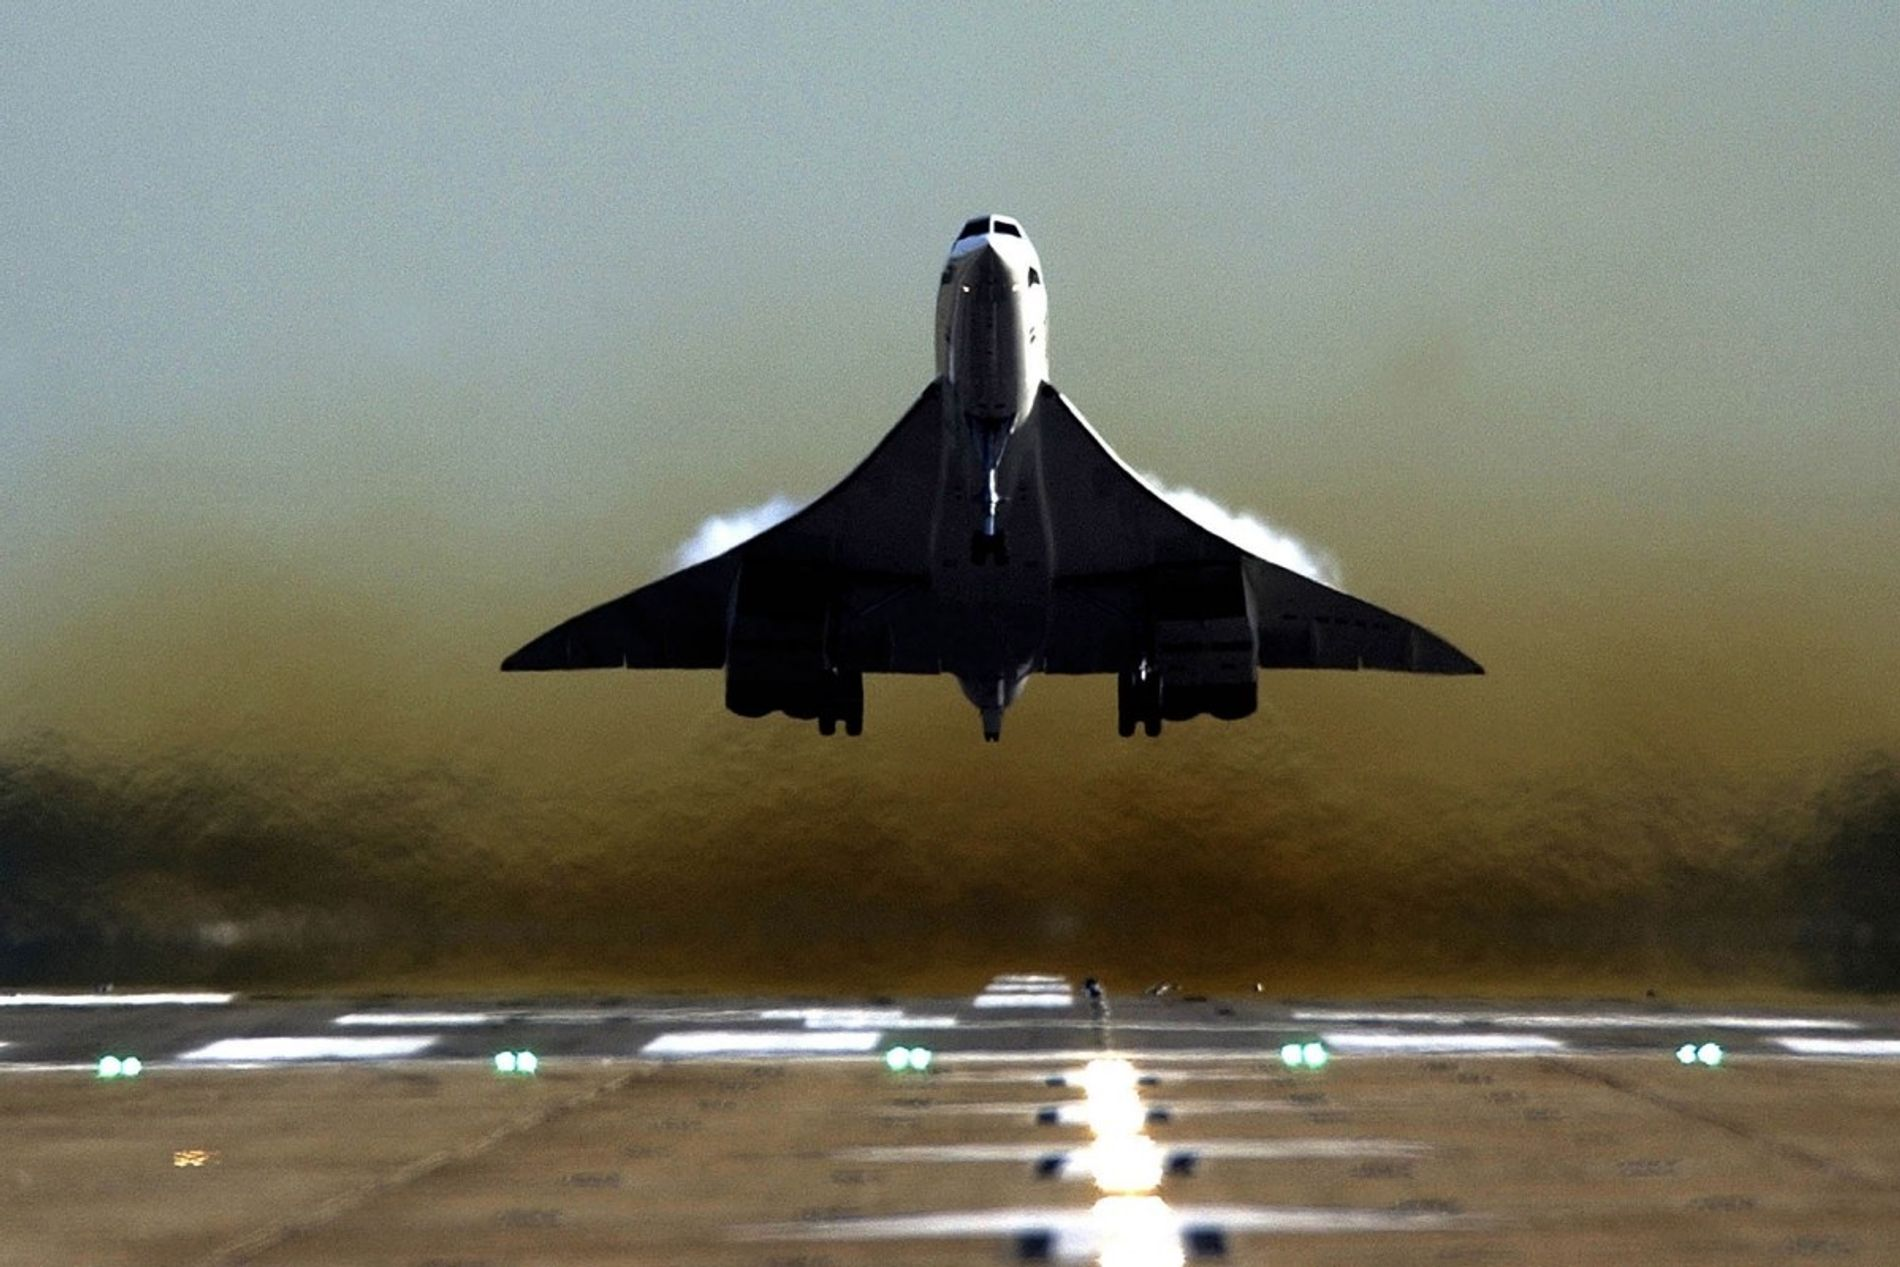 The most iconic feature of the aircraft, Concorde's delta wing design allowed for devastating speed – but required great thrust to combat drag to get airborne. Takeoffs were often accompanied by vapour rising from the wings.